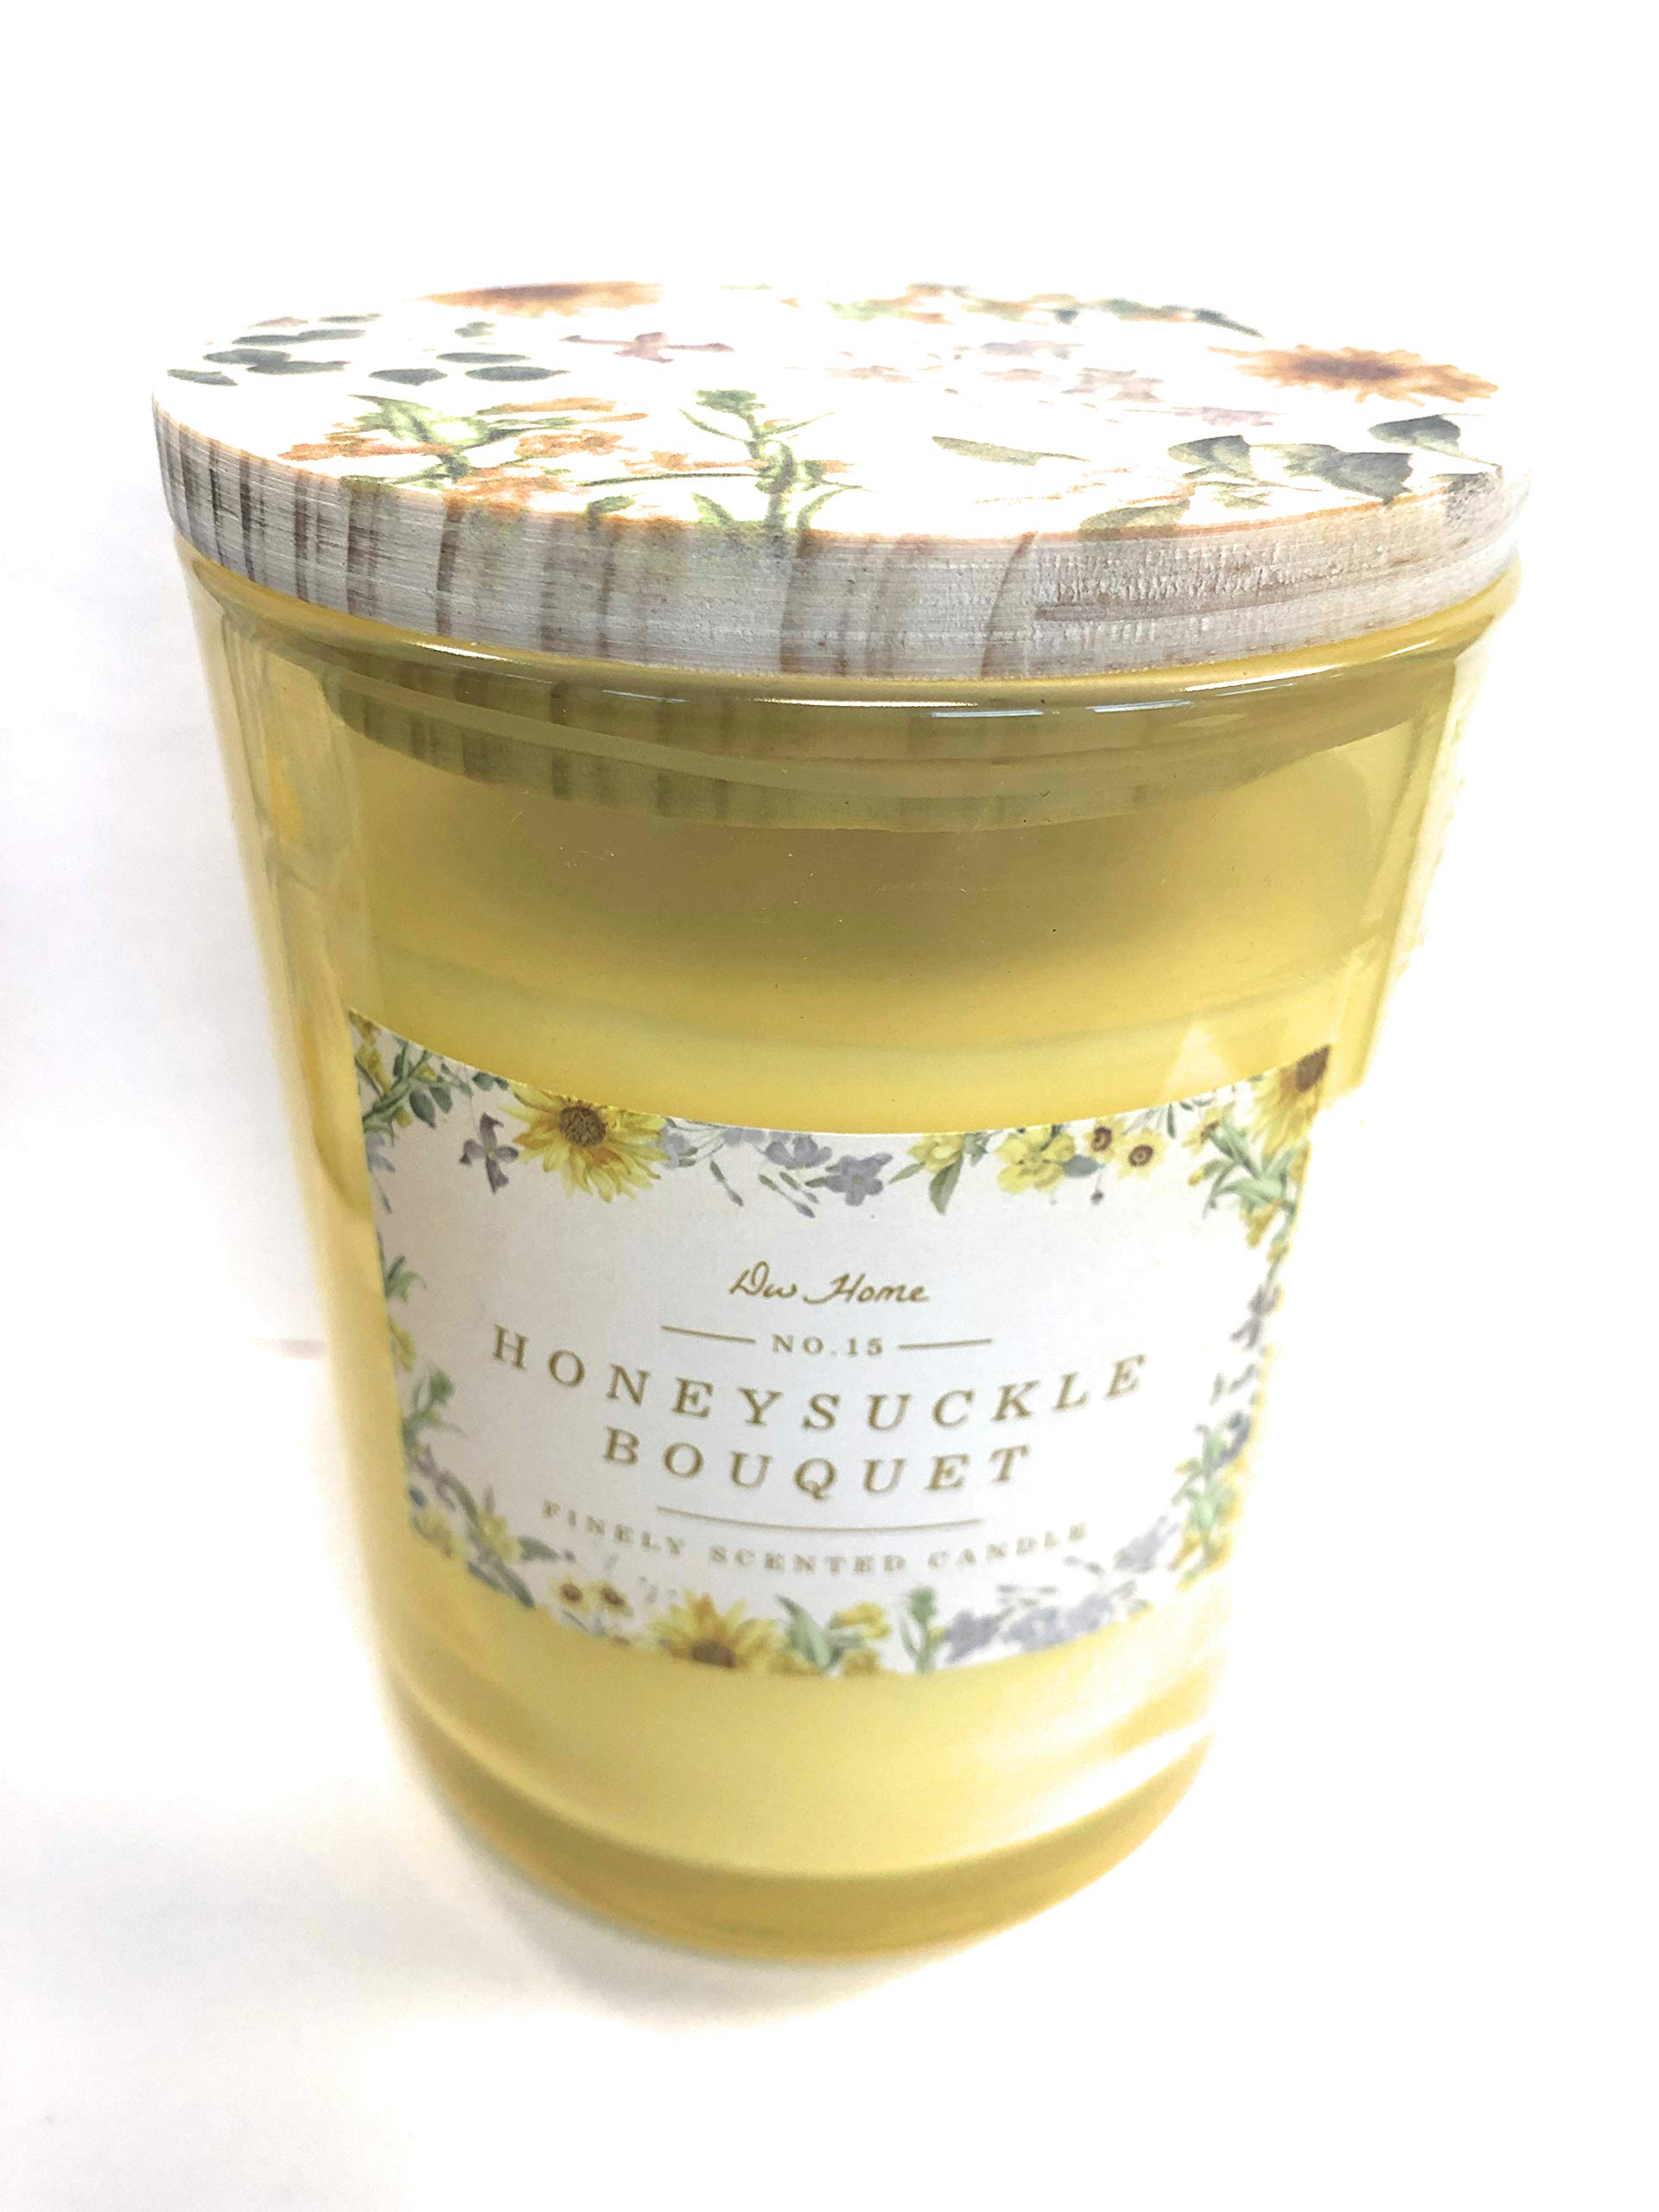 DW Home Honeysuckle Bouquet Double Wick Candle No 15. 14 Oz